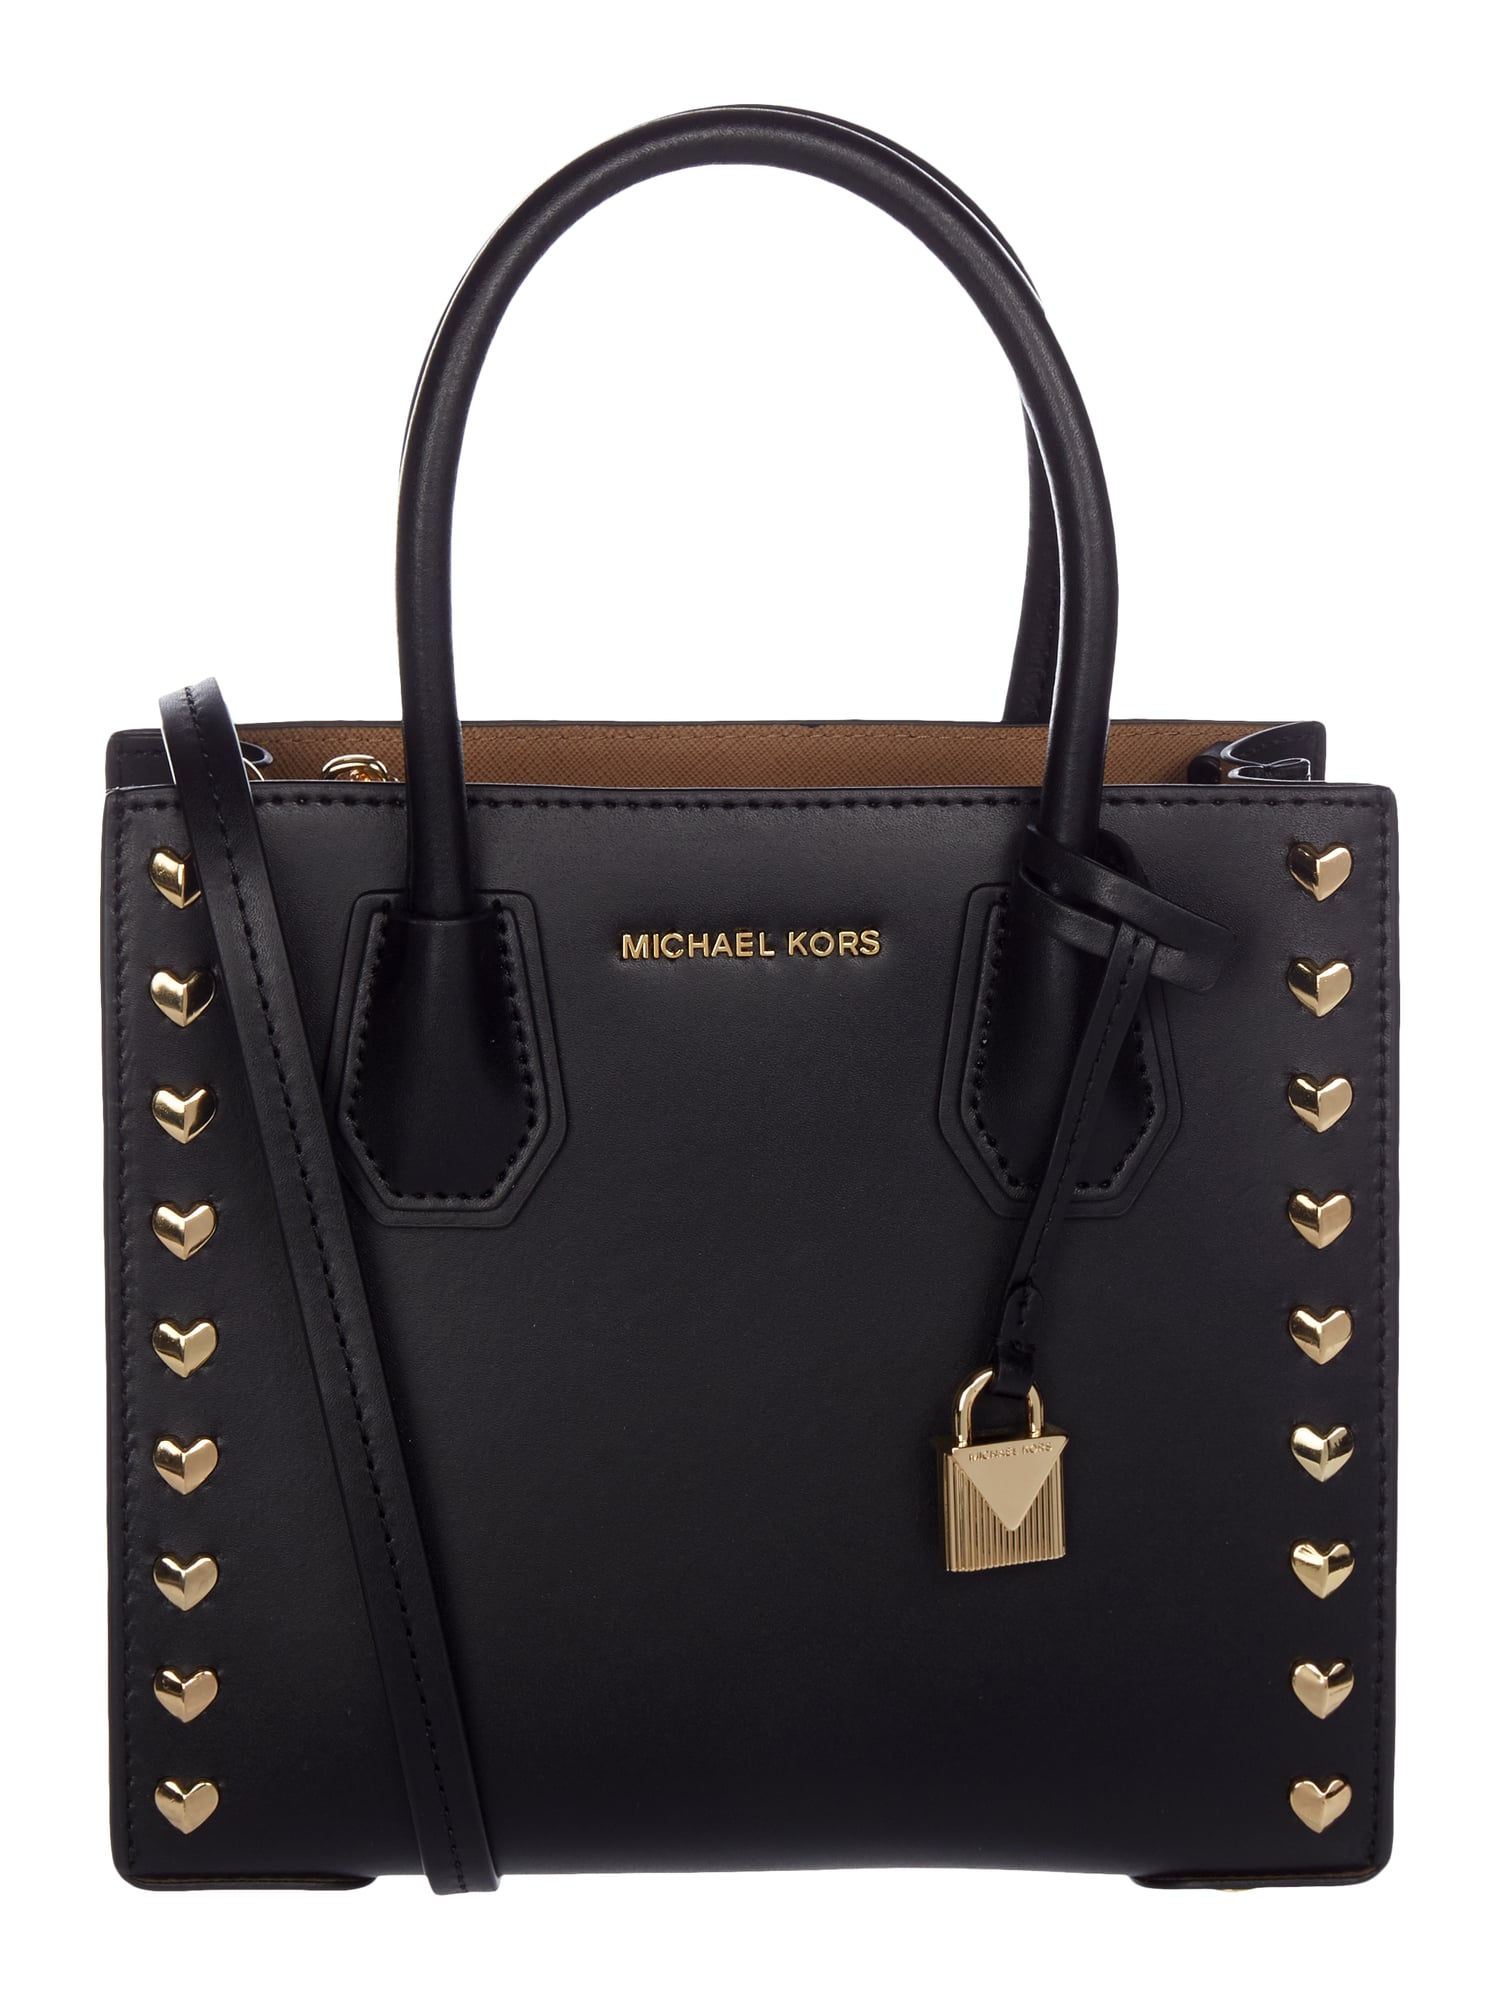 michael michael kors crossbody bag aus glattleder in grau schwarz online kaufen 9732923 p c. Black Bedroom Furniture Sets. Home Design Ideas